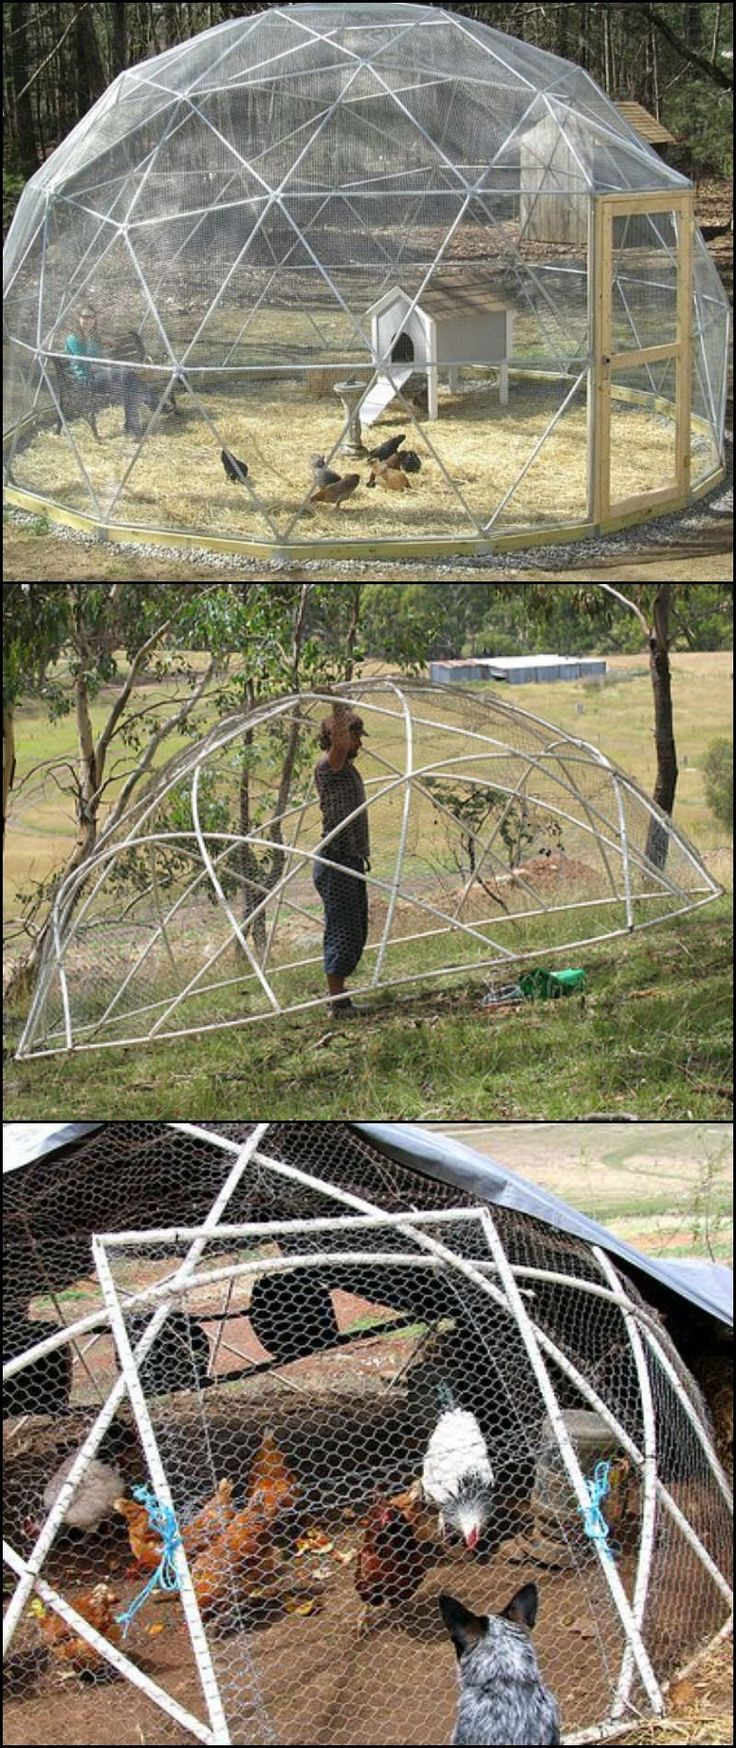 Need a chicken tractor? A geodesic chook dome might just have the features you're looking for! By choosing a geodesic structure to house your chooks, you end up with circular beds. It is also easier to move around the yard... Learn more about what makes a geodesic chicken tractor great by heading over to our site at http://diyprojects.ideas2live4.com/2016/02/18/how-to-build-a-geodesic-chicken-coop/ #howtobuildanaviary #buildaviary